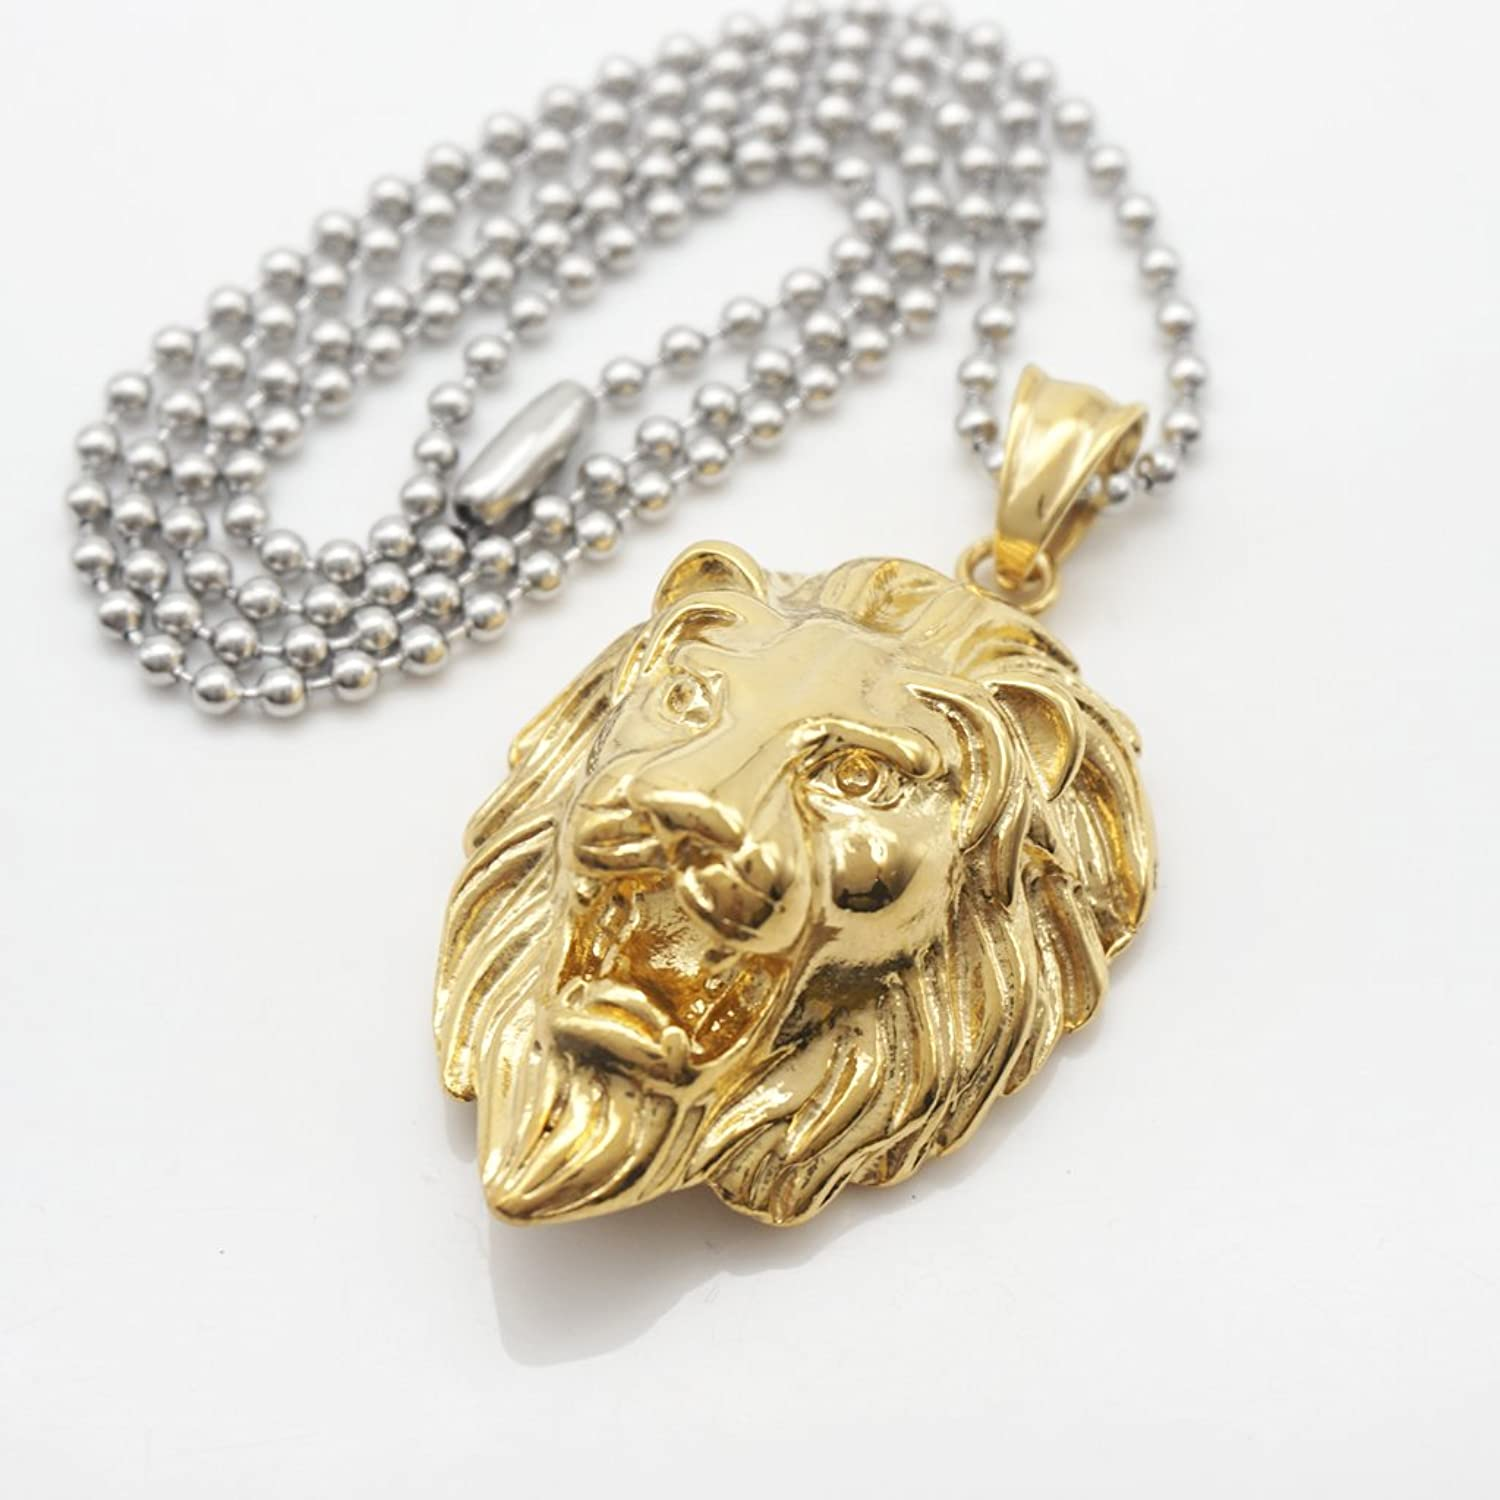 with pendant dp lion charm steel for silver necklace amazon stainless crystal s chain jewelry men beads co uk women jewellery